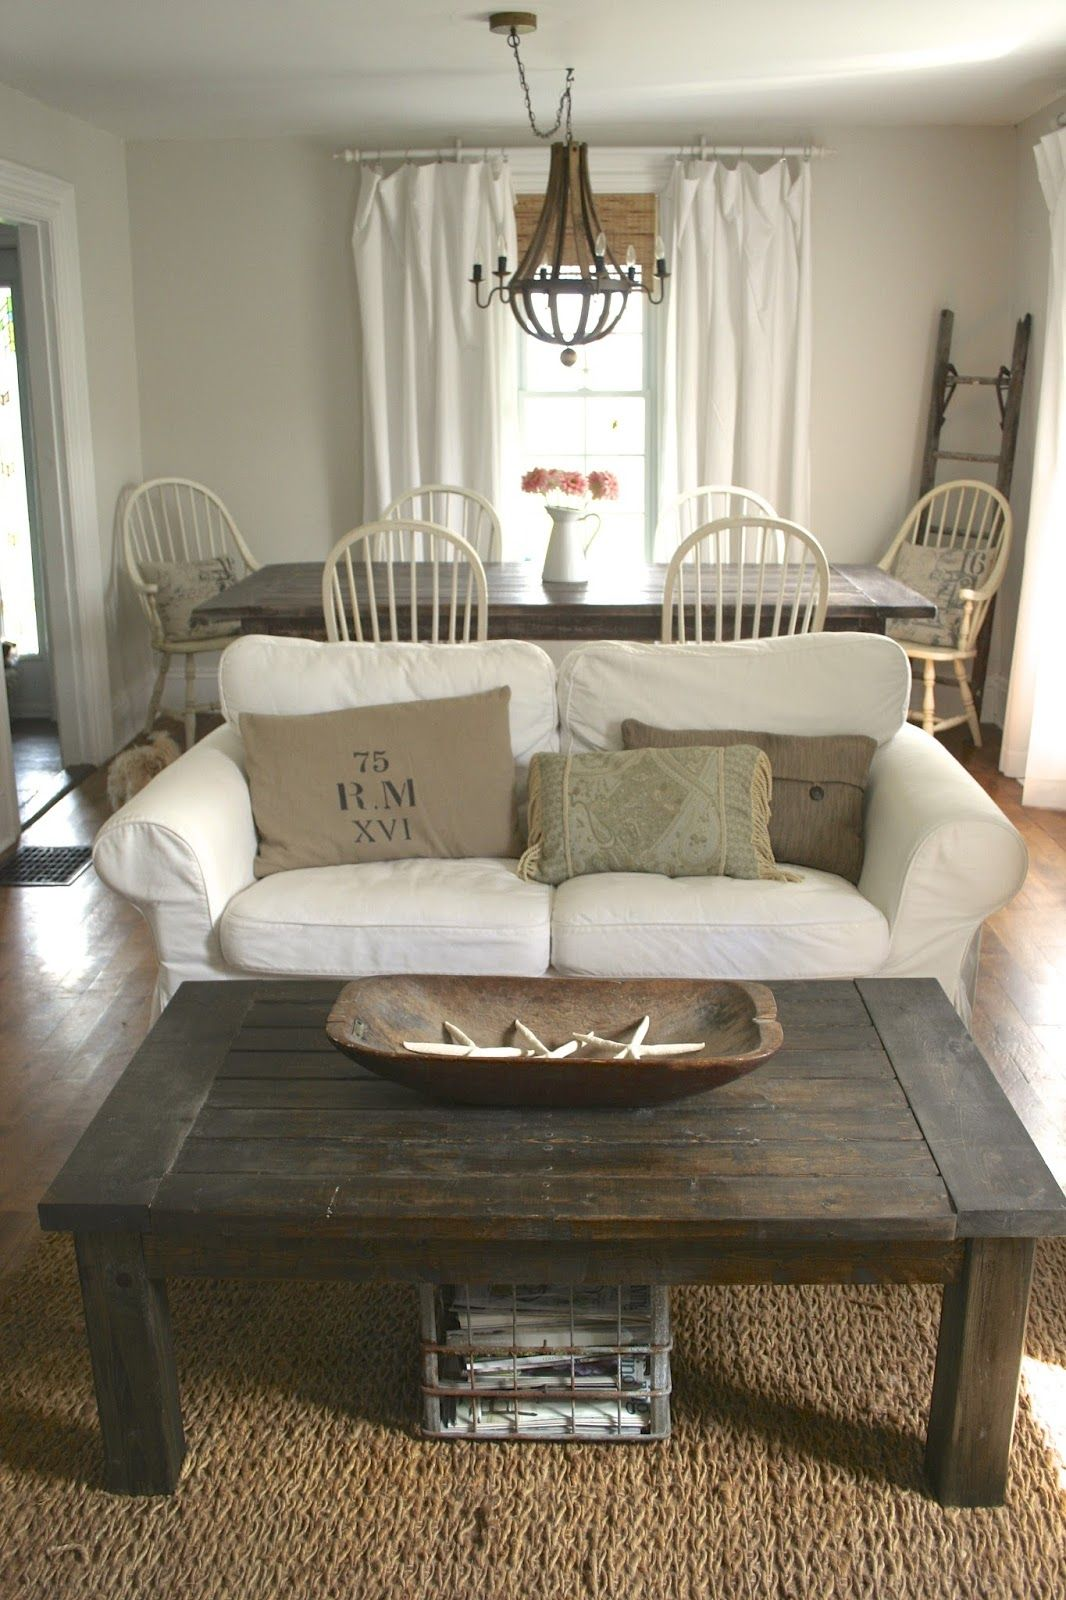 IMG_7147.jpg 1,066×1,600 pixels   Living room dining room ... on Awesome Apartment Budget Apartment Living Room Ideas  id=89863